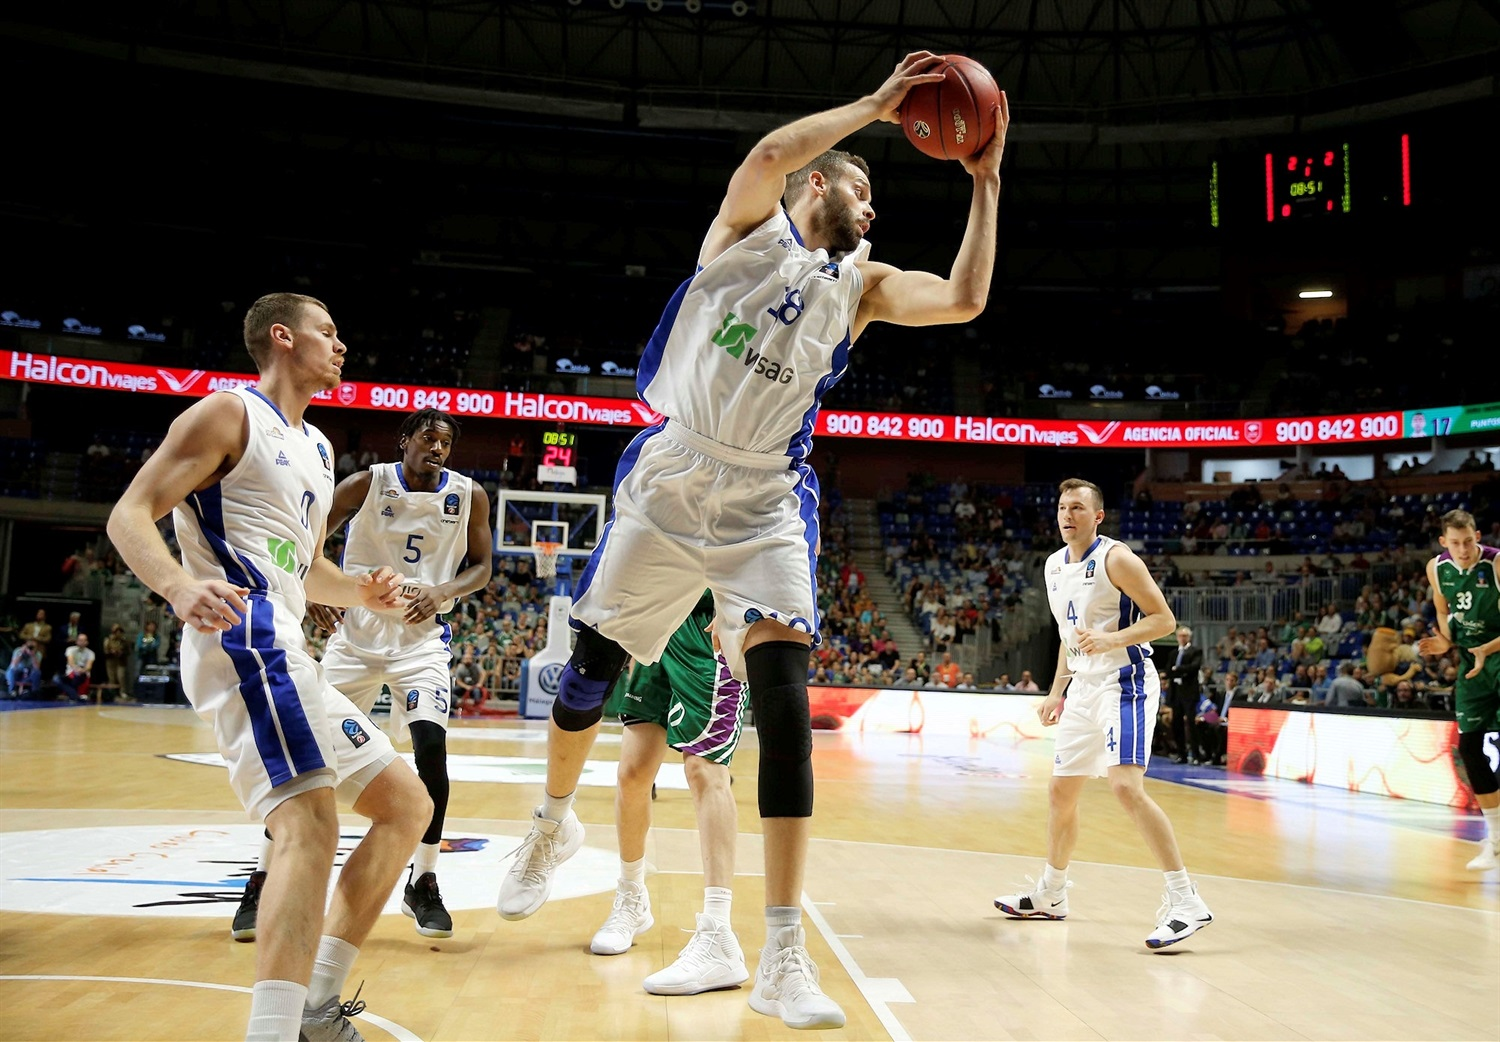 Jonas Wohlfarth-Bottermann - Fraport Skyliners Frankfurt (photo Unicaja) - EC18